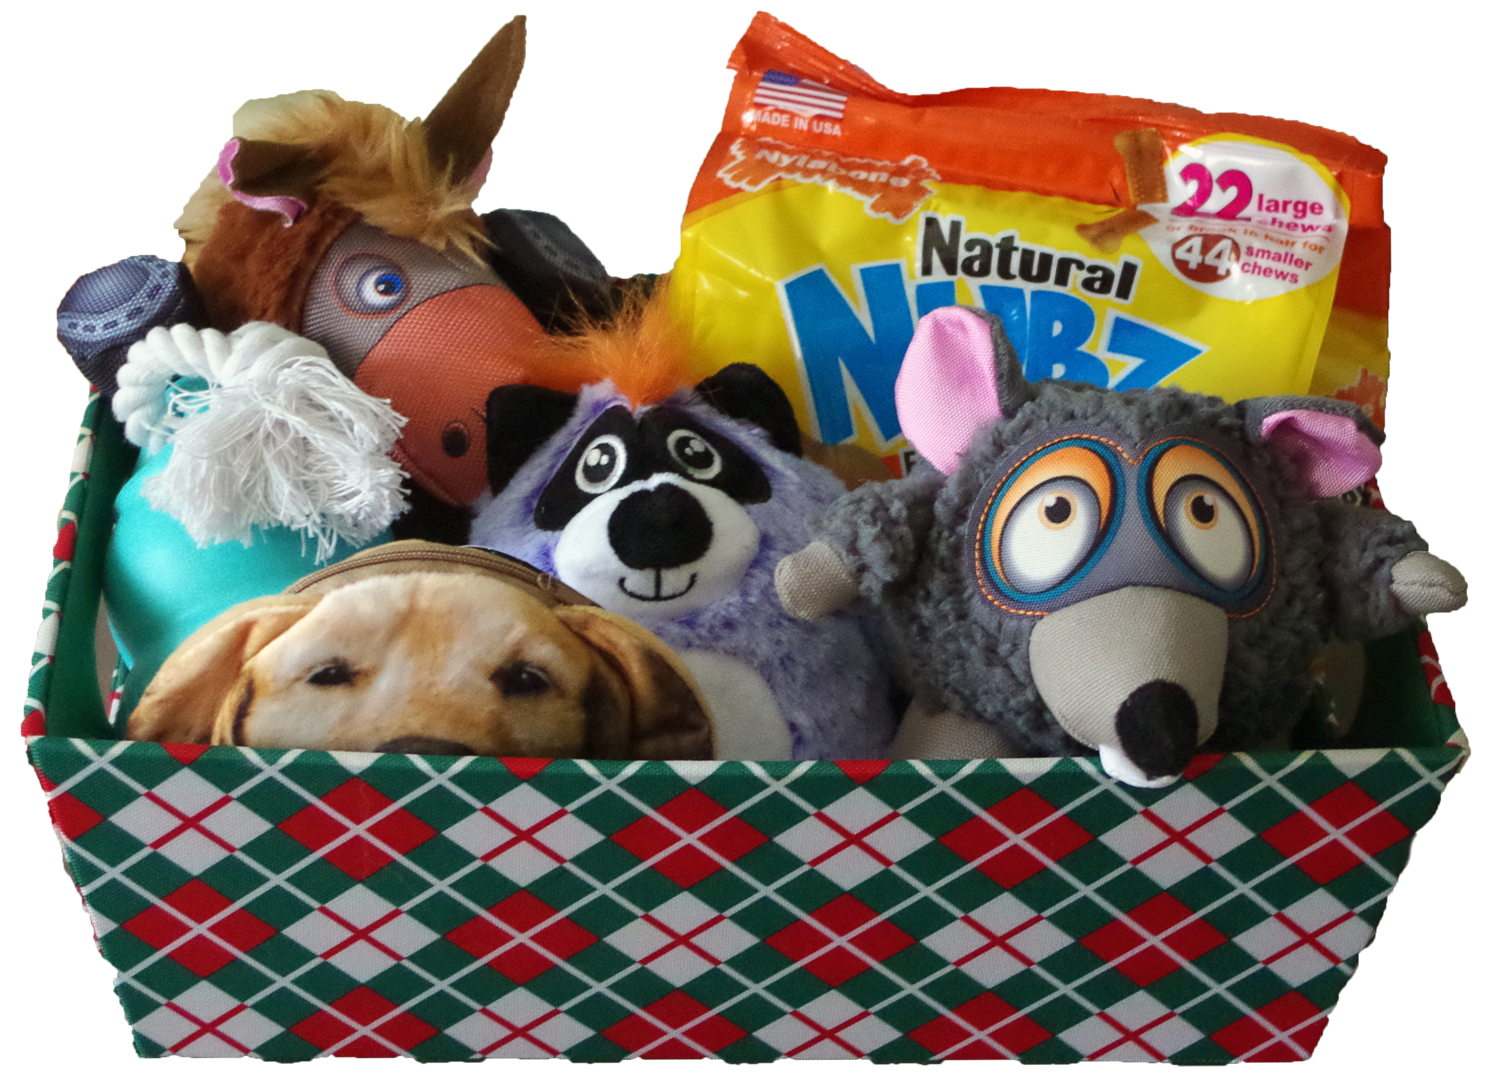 Dog-themed red, white and green patterned basket - Golden Retriever change purse, Nubz dog treats, Kong dog toys, and barnyard animal dog toys